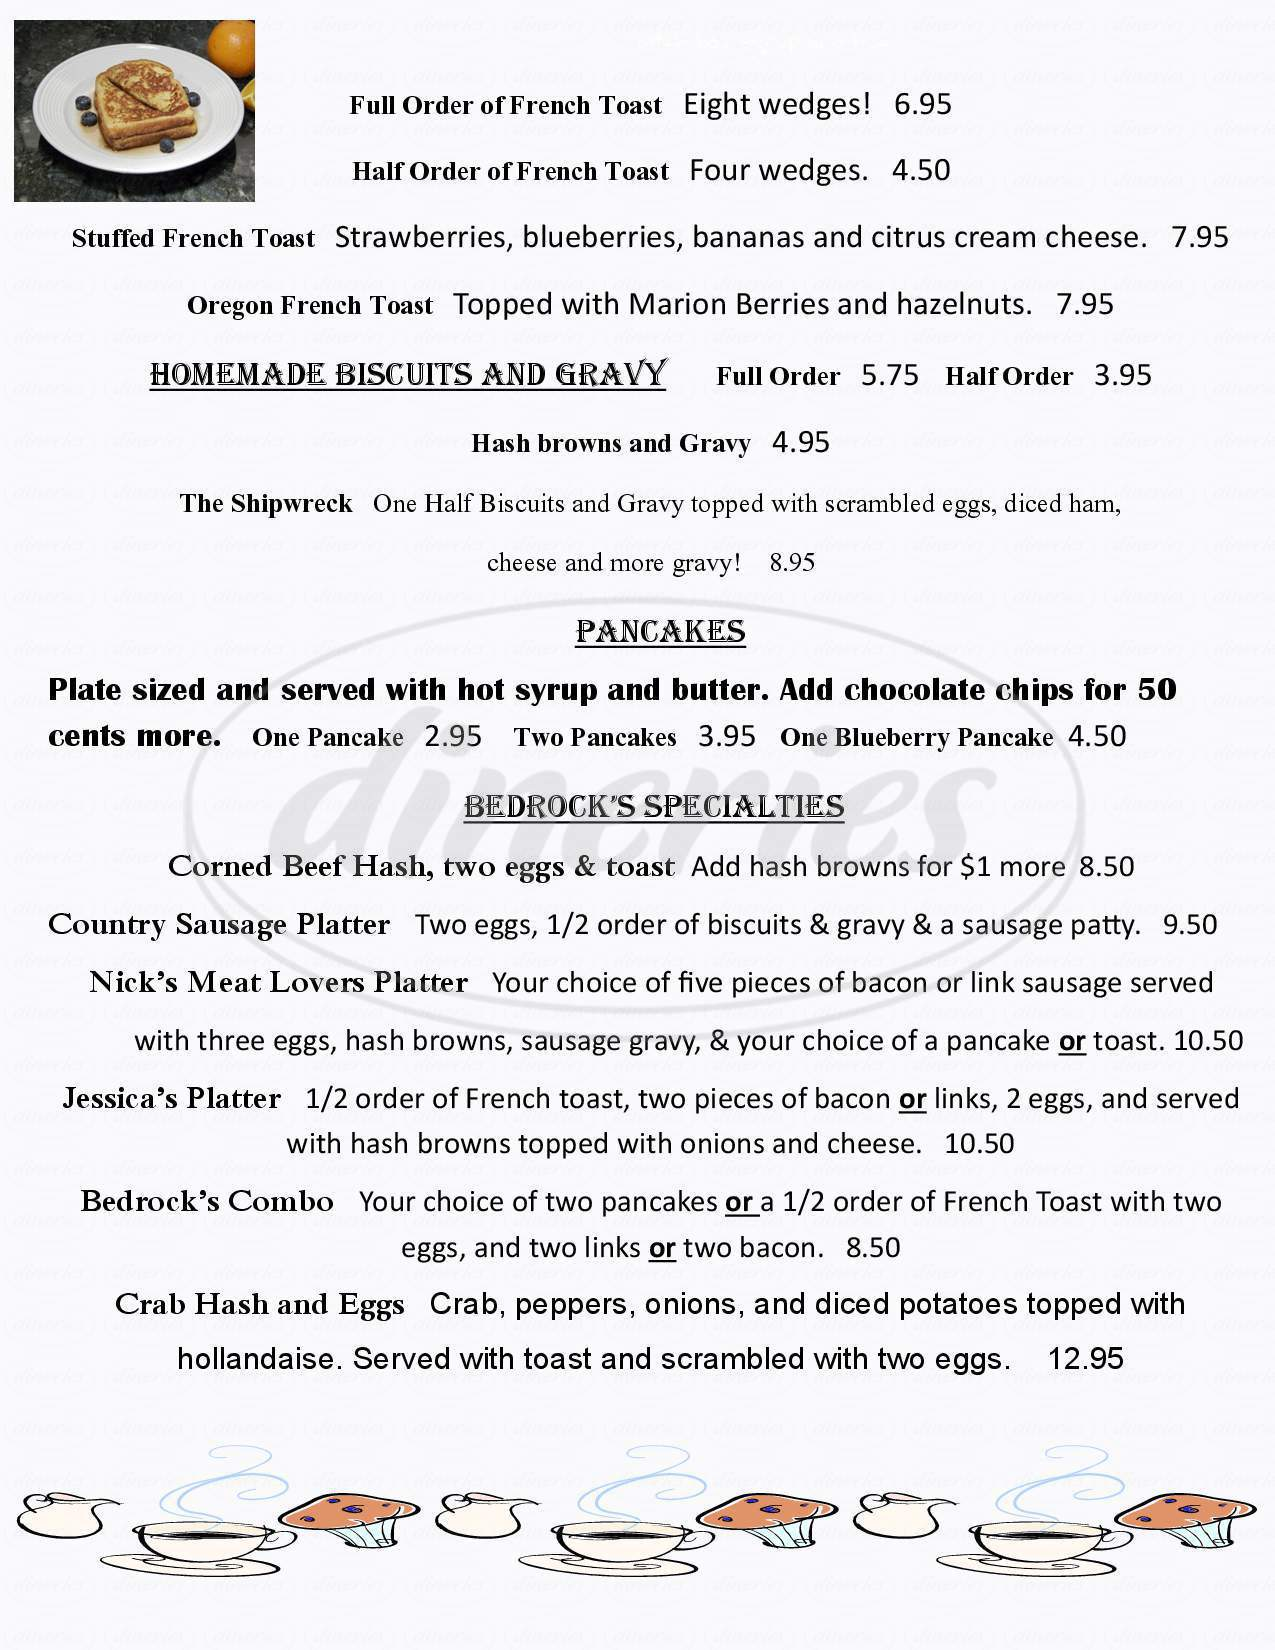 menu for Bedrock's Chowder House & Grill